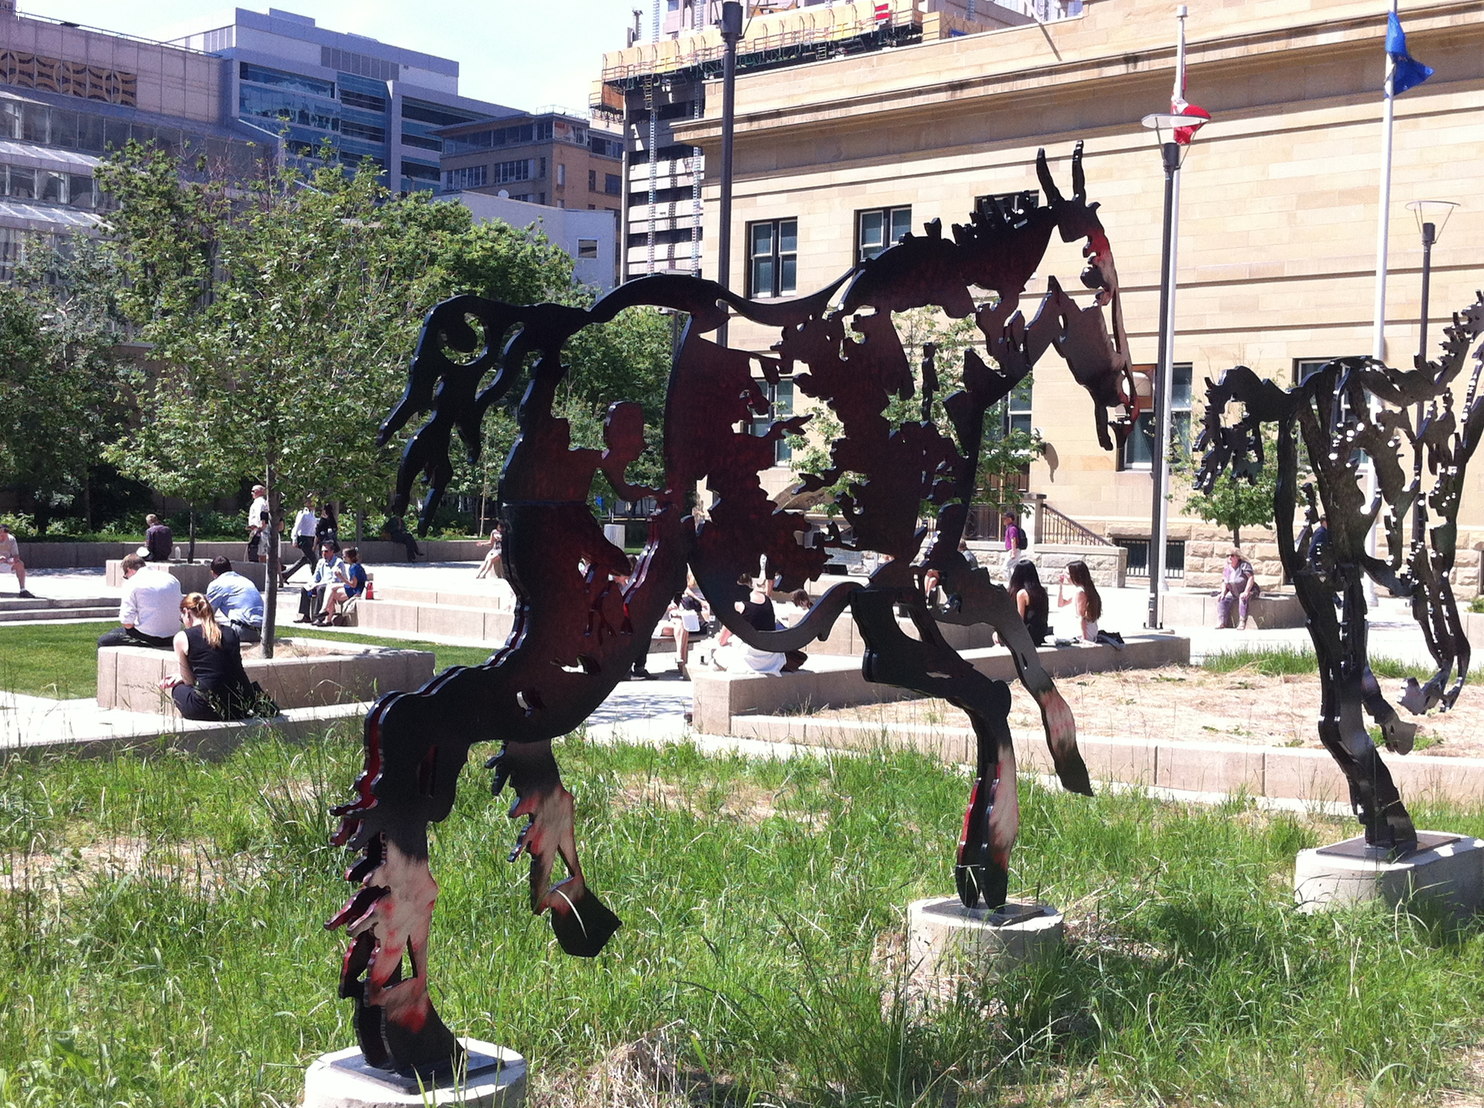 Calgary's City Centre is full of lovely public art, parks and plazas each with their own character and charm.